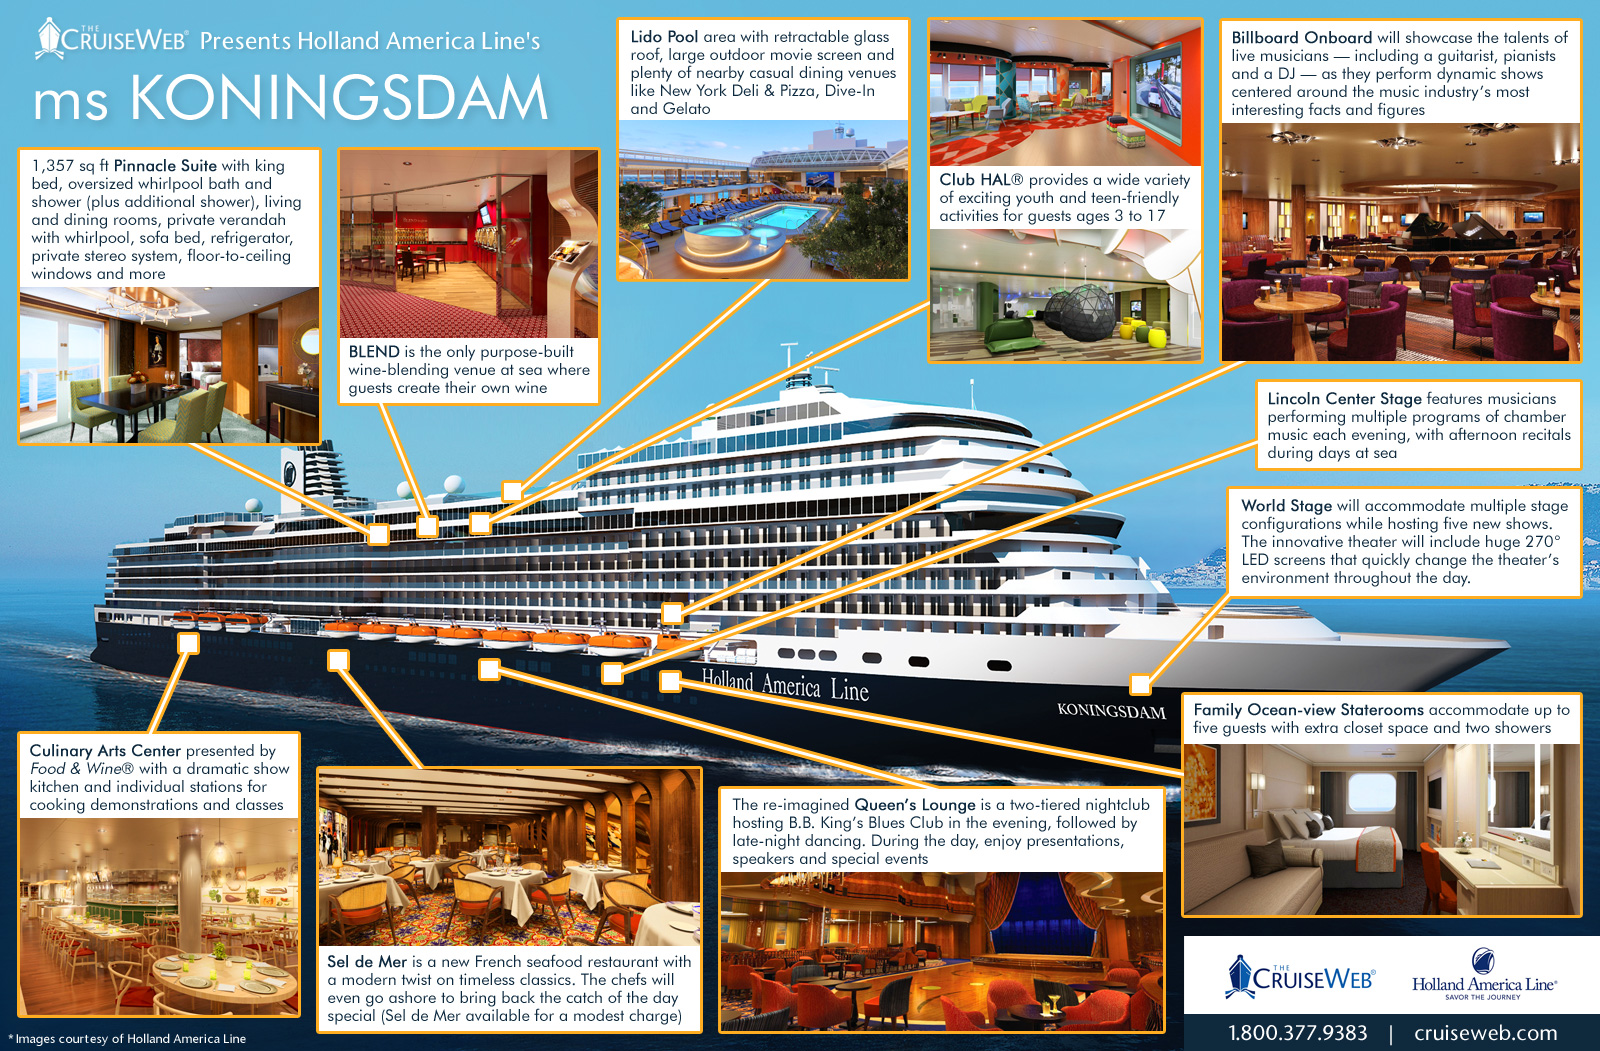 Click to view our ms Koningsdam Infographic